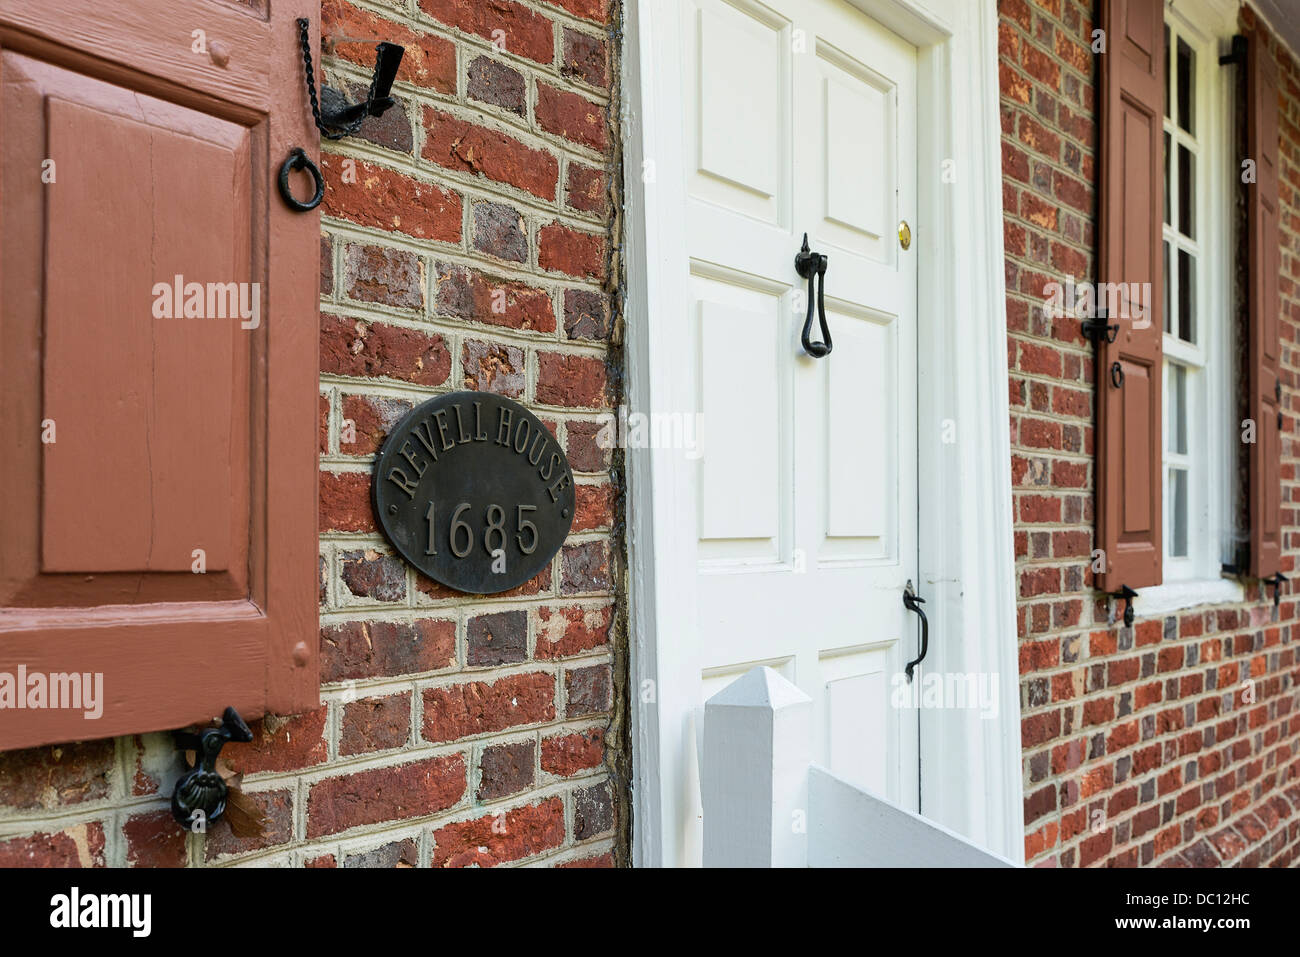 The historic one-room Revell House, the oldest building in Burlington County, Burlington, New Jersey, USA. 1865 - Stock Image